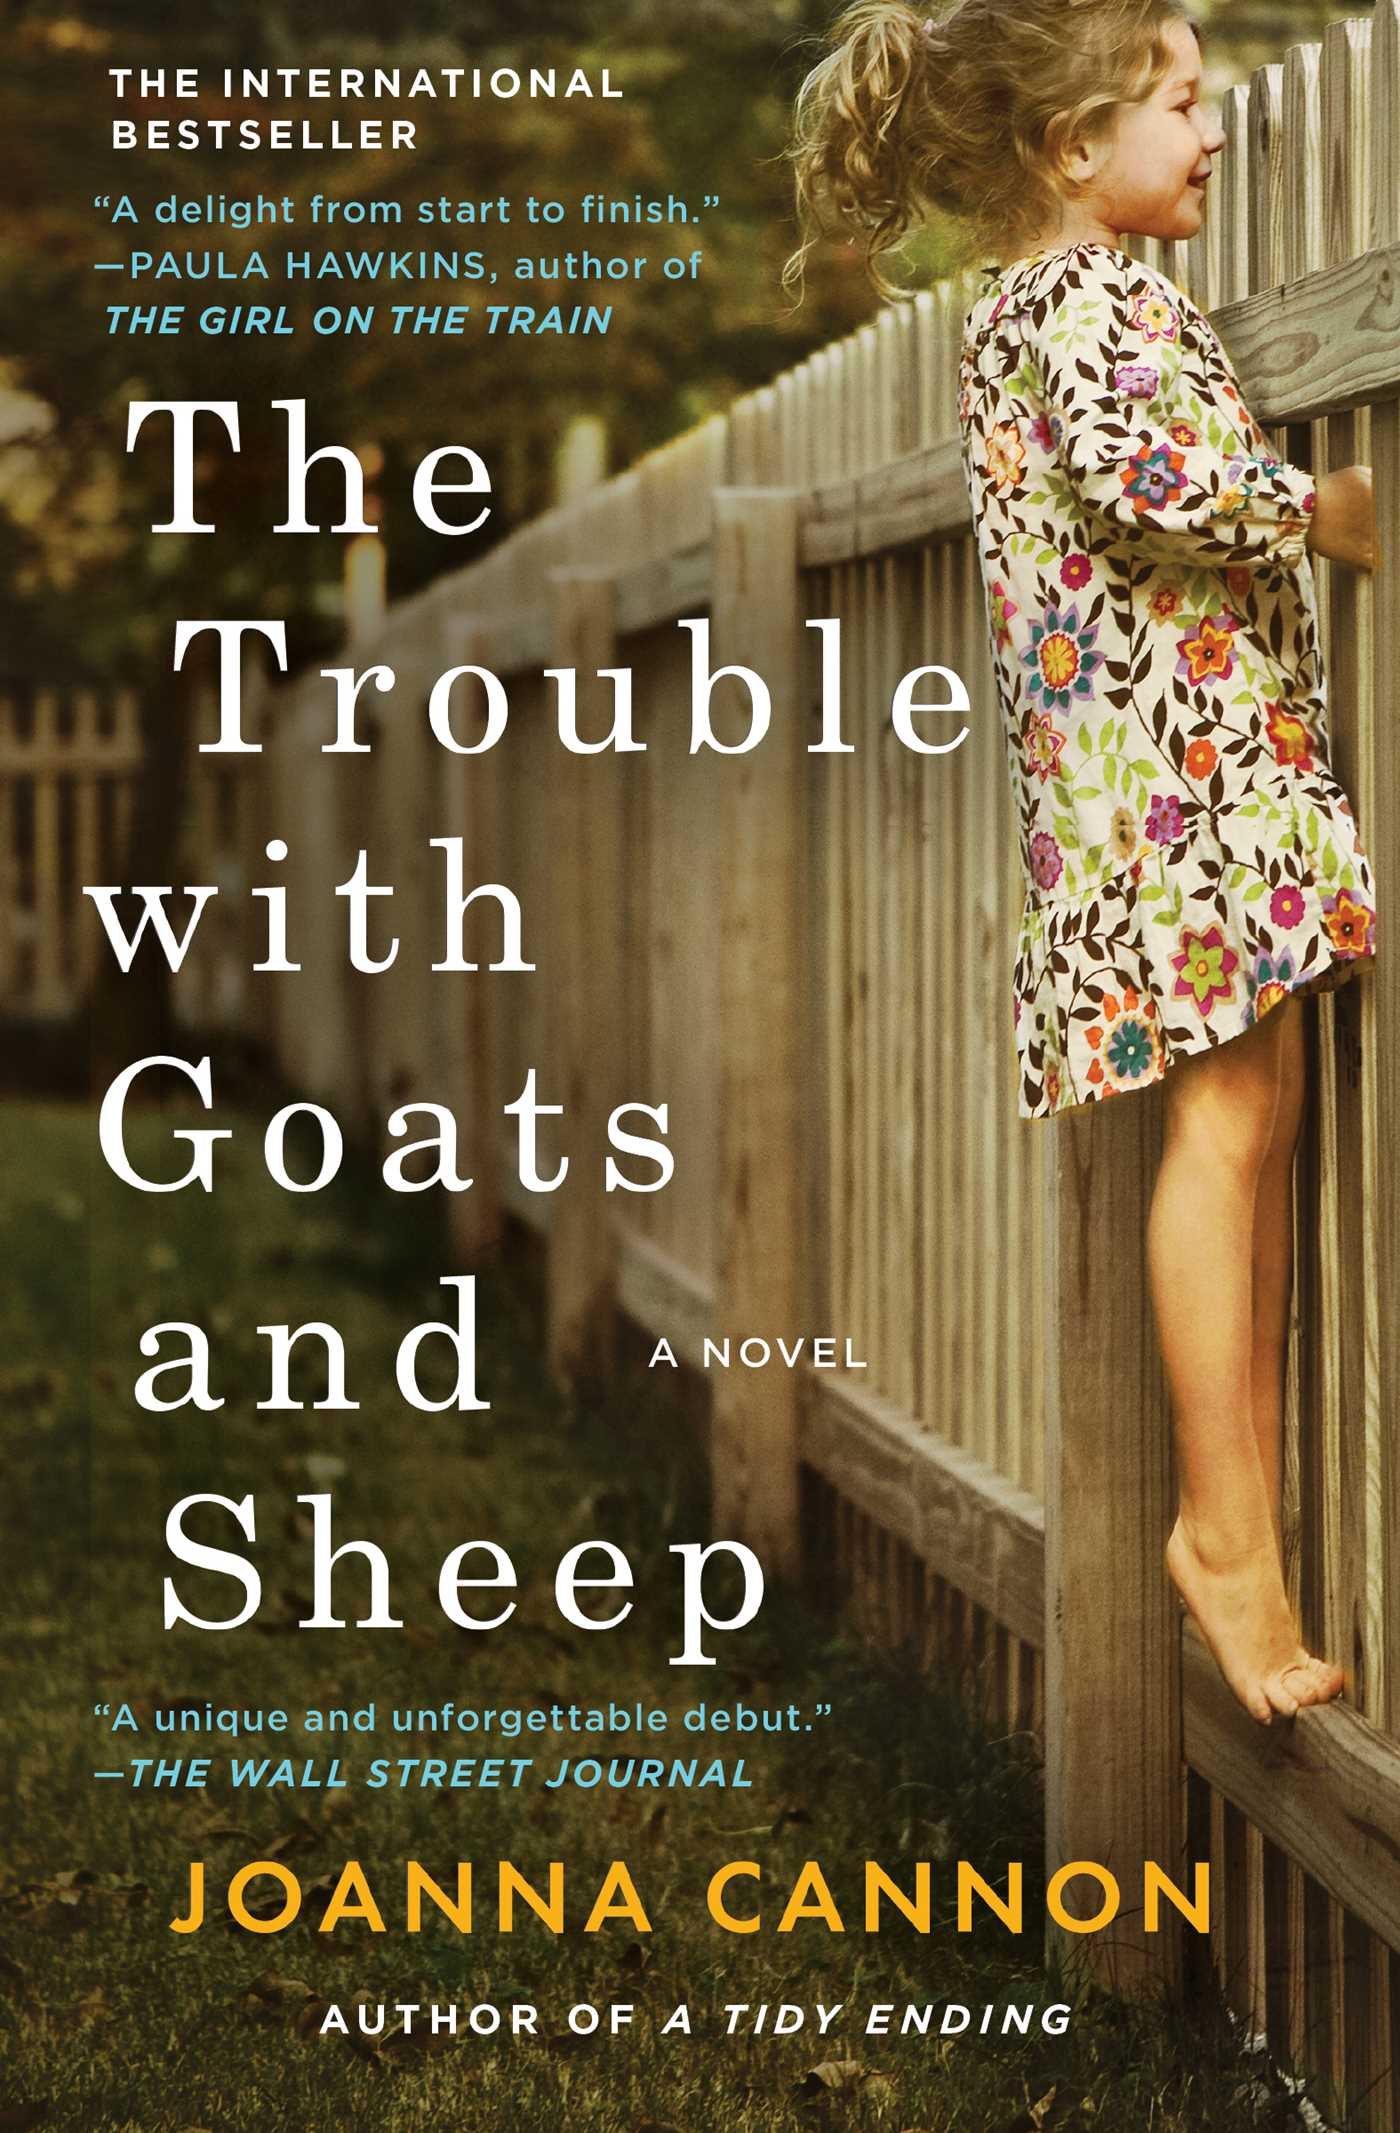 The trouble with goats and sheep 9781501121906 hr